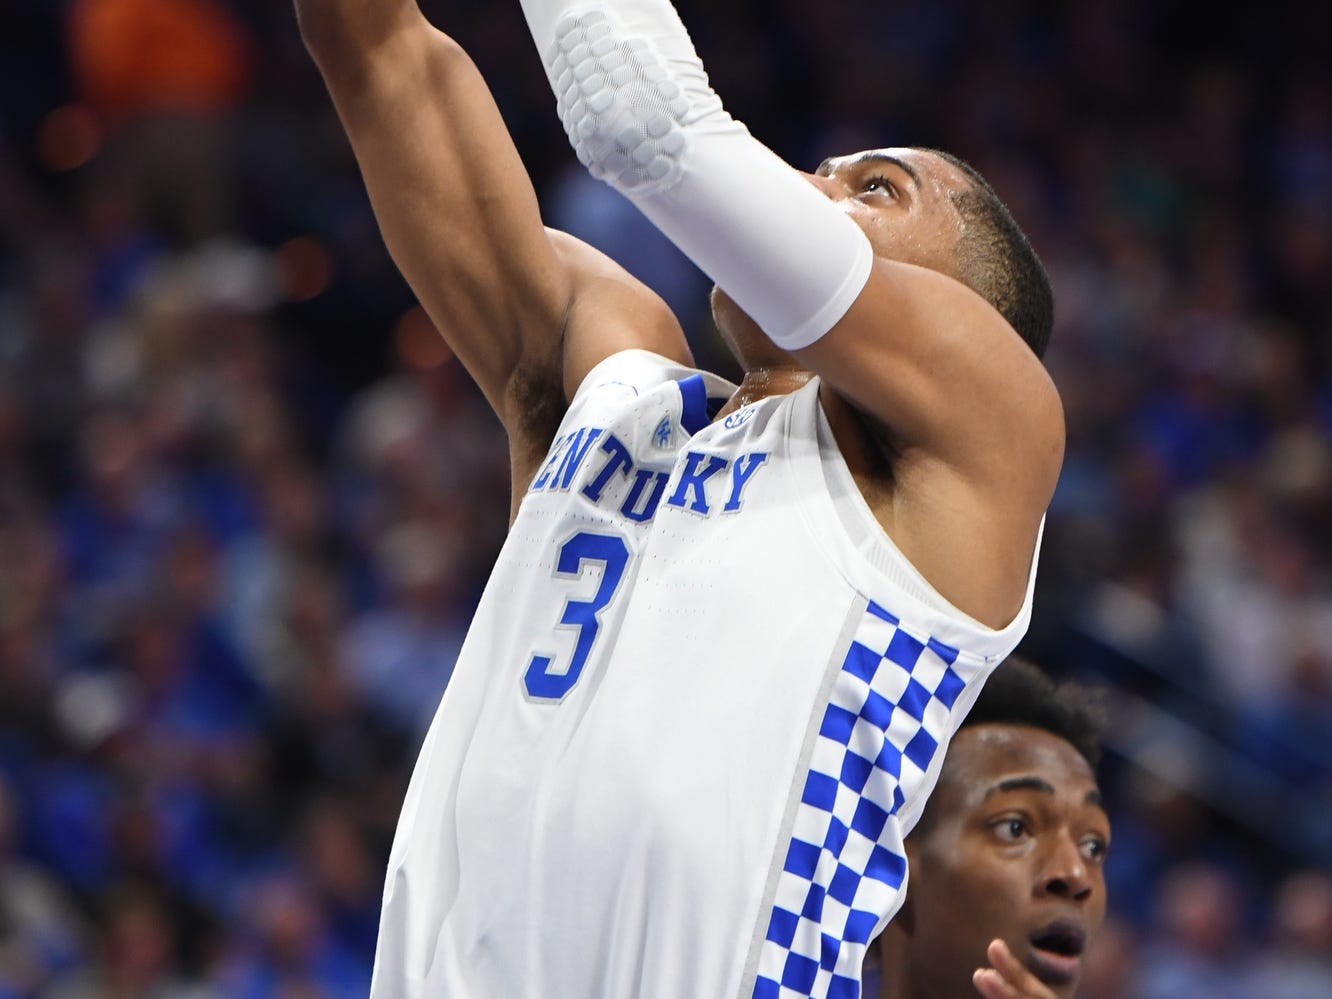 UK G Keldon Johnson lays up the ball during the University of Kentucky men's basketball game against Tennessee State at Rupp Arena in Lexington, Kentucky, on Friday, Nov. 23, 2018.